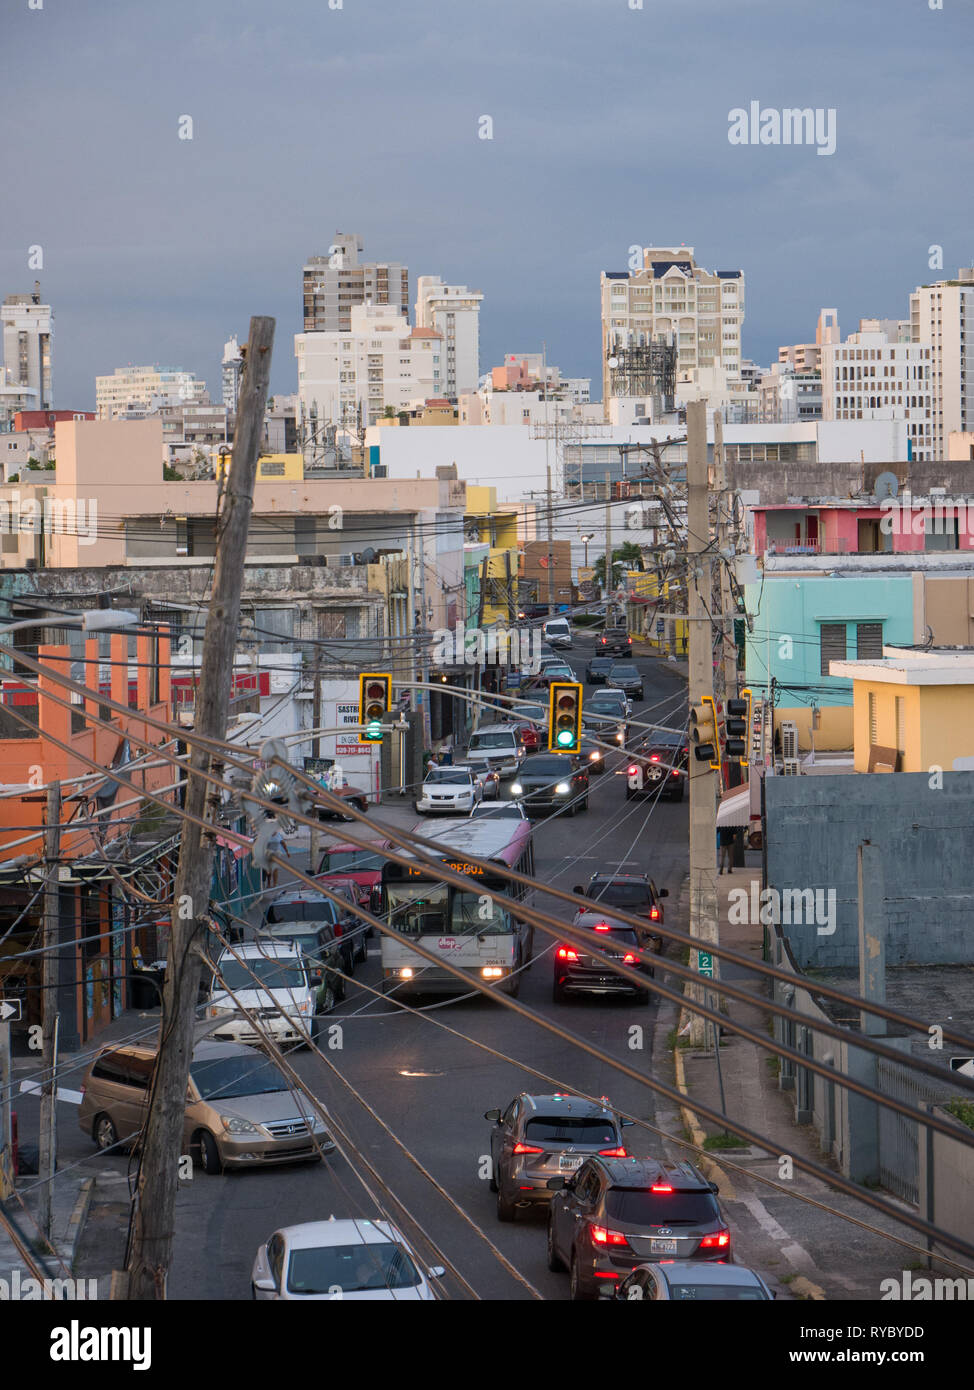 Santurce, San Juan, Puerto Rico. January 2019. Calle Loiza is the place where you feel at home in Santurce Puerto Rico. An authentic Puerto Rican comm - Stock Image